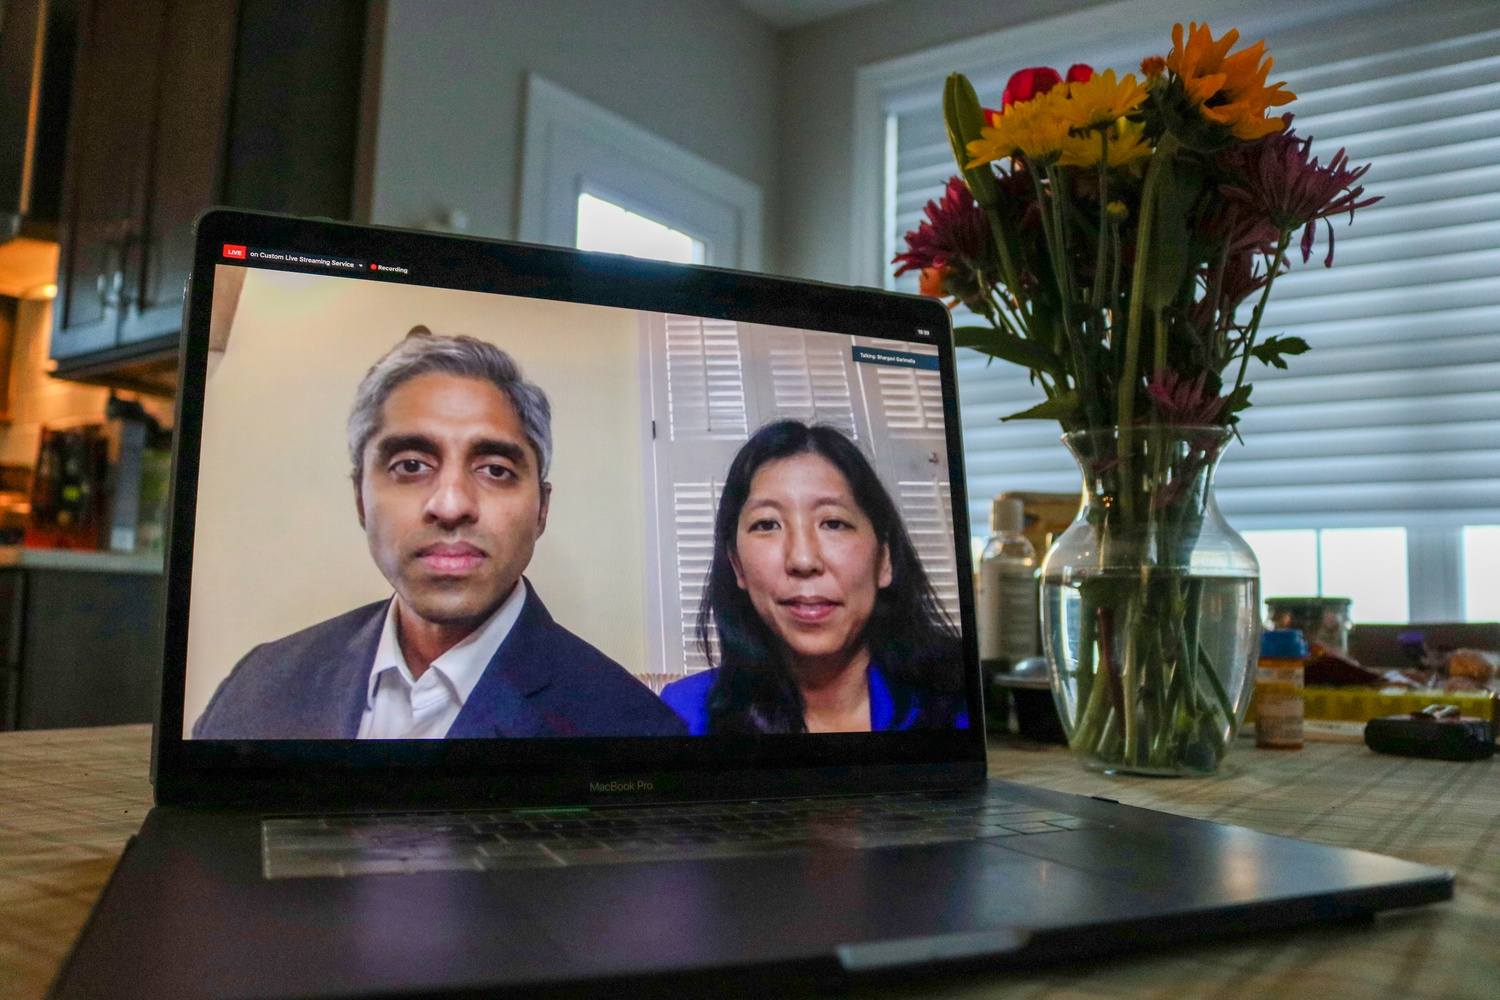 U.S. Surgeon General Dr. Vivek Murthy and Dr. Alice Chen spoke to students about the current information on COVID-19 and the importance of prioritizing mental health during the crisis in a conference call hosted by South Asian Americans in Public Service (SAAPS) Tuesday evening.